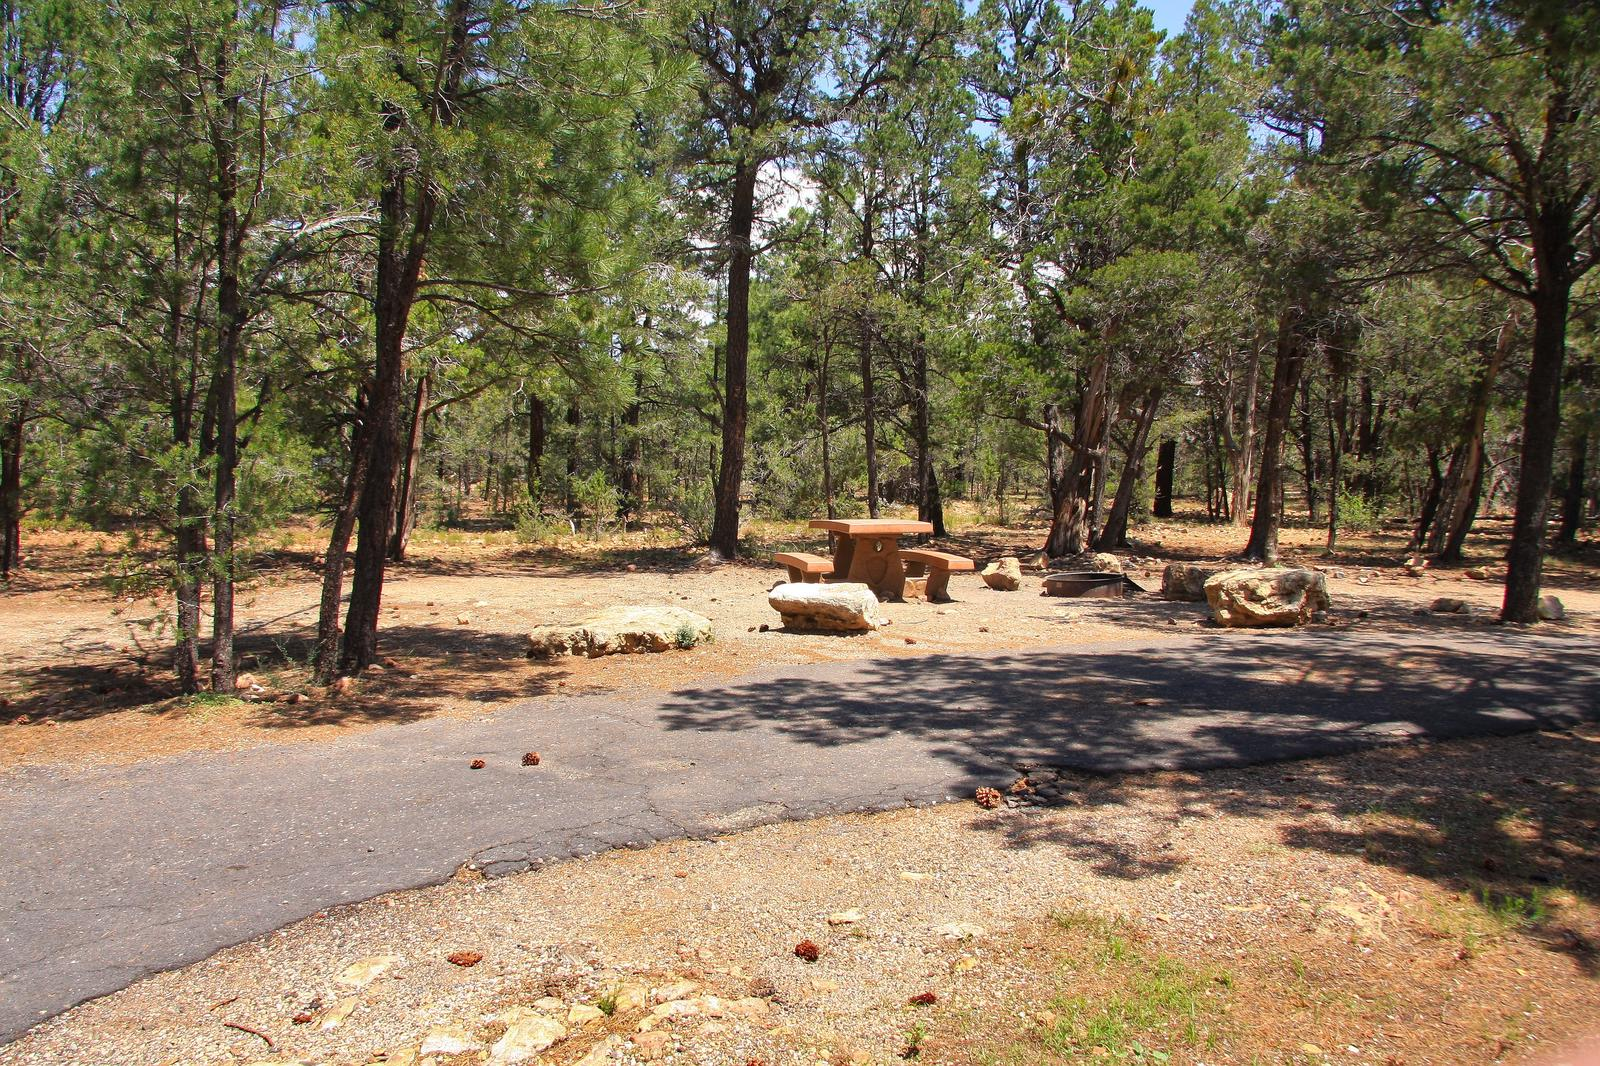 Picnic table, fire pit, and parking spot, Mather CampgroundPicnic table, fire pit, and parking spot for Juniper Loop 134, Mather Campground